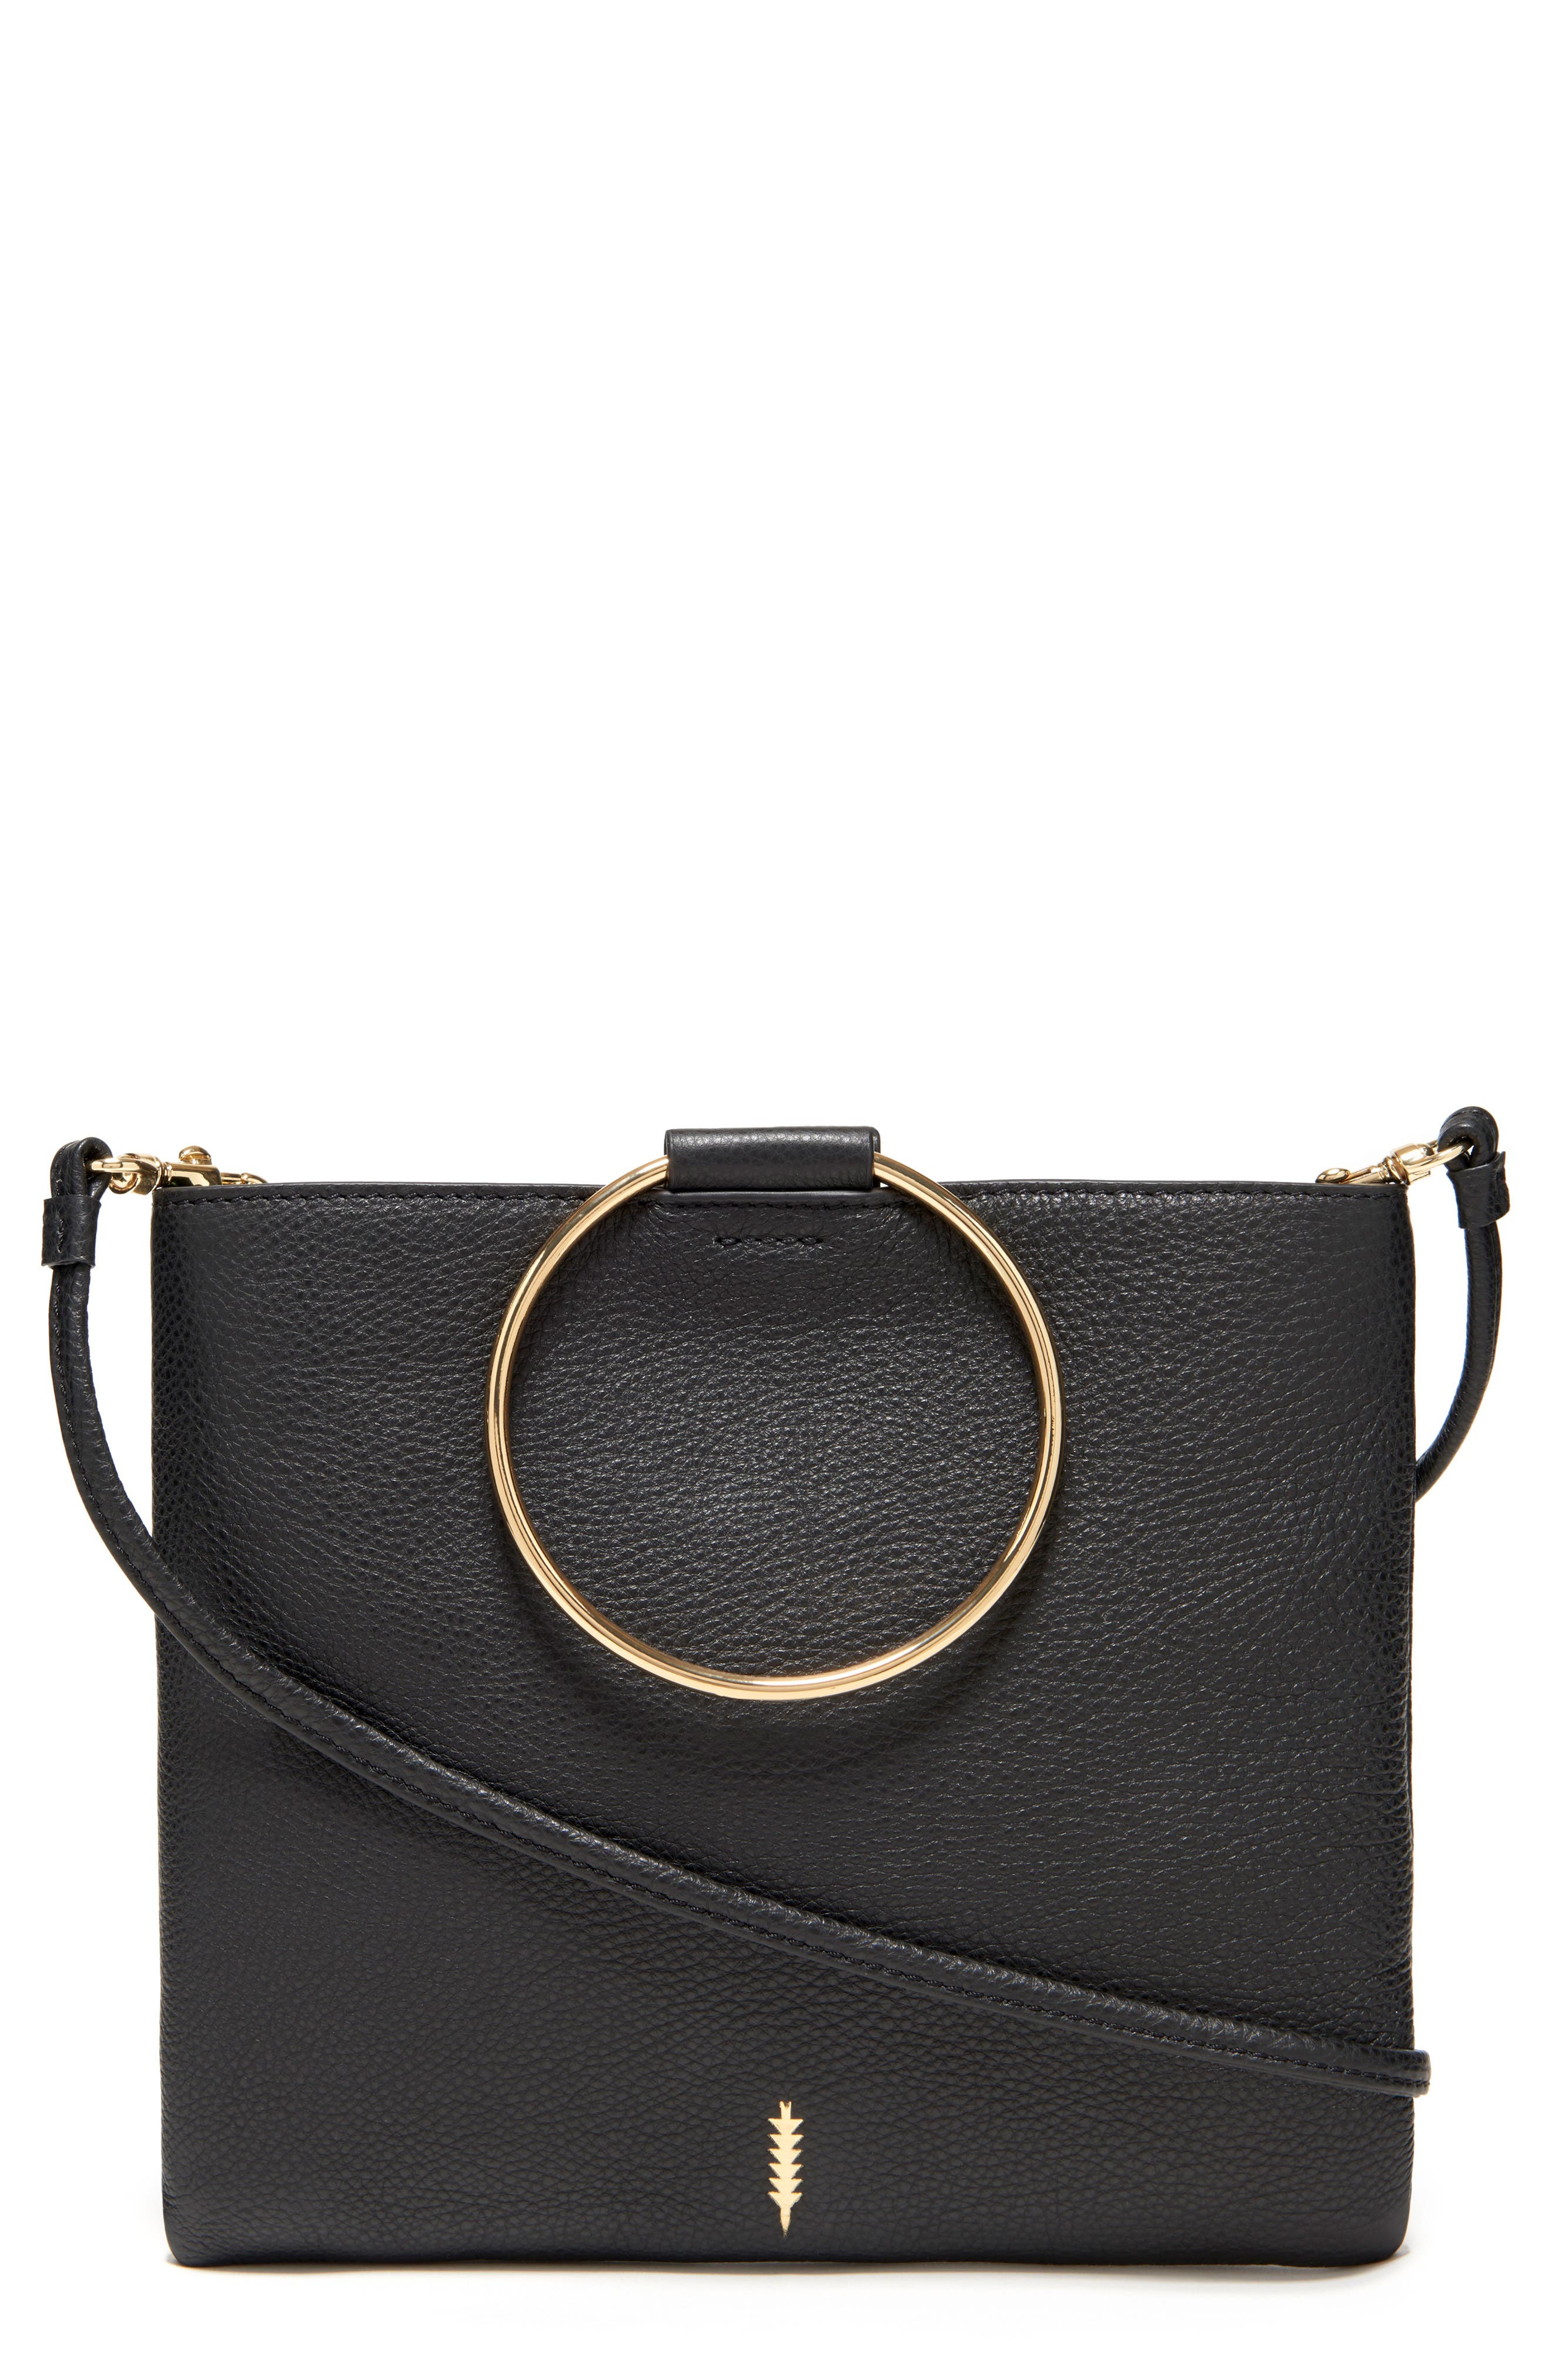 THACKER Le Pouch Leather Ring Handle Crossbody Bag, Main, color, 001